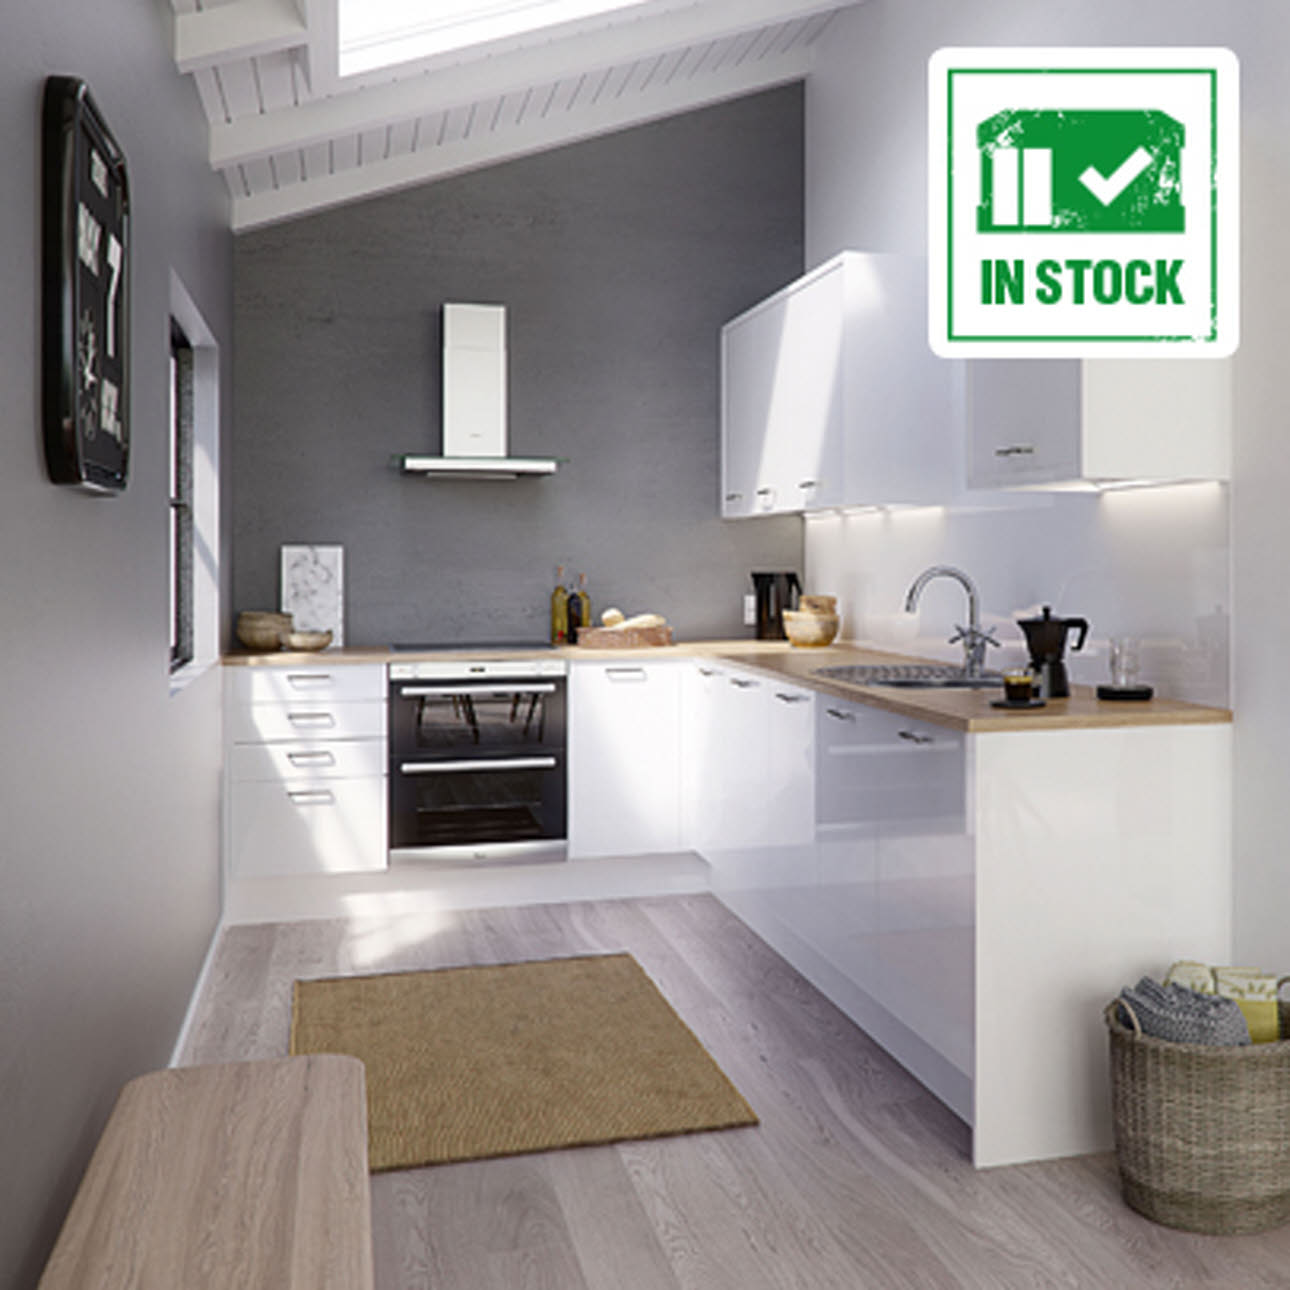 Our Range Of In Stock Kitchens Magnet Trade